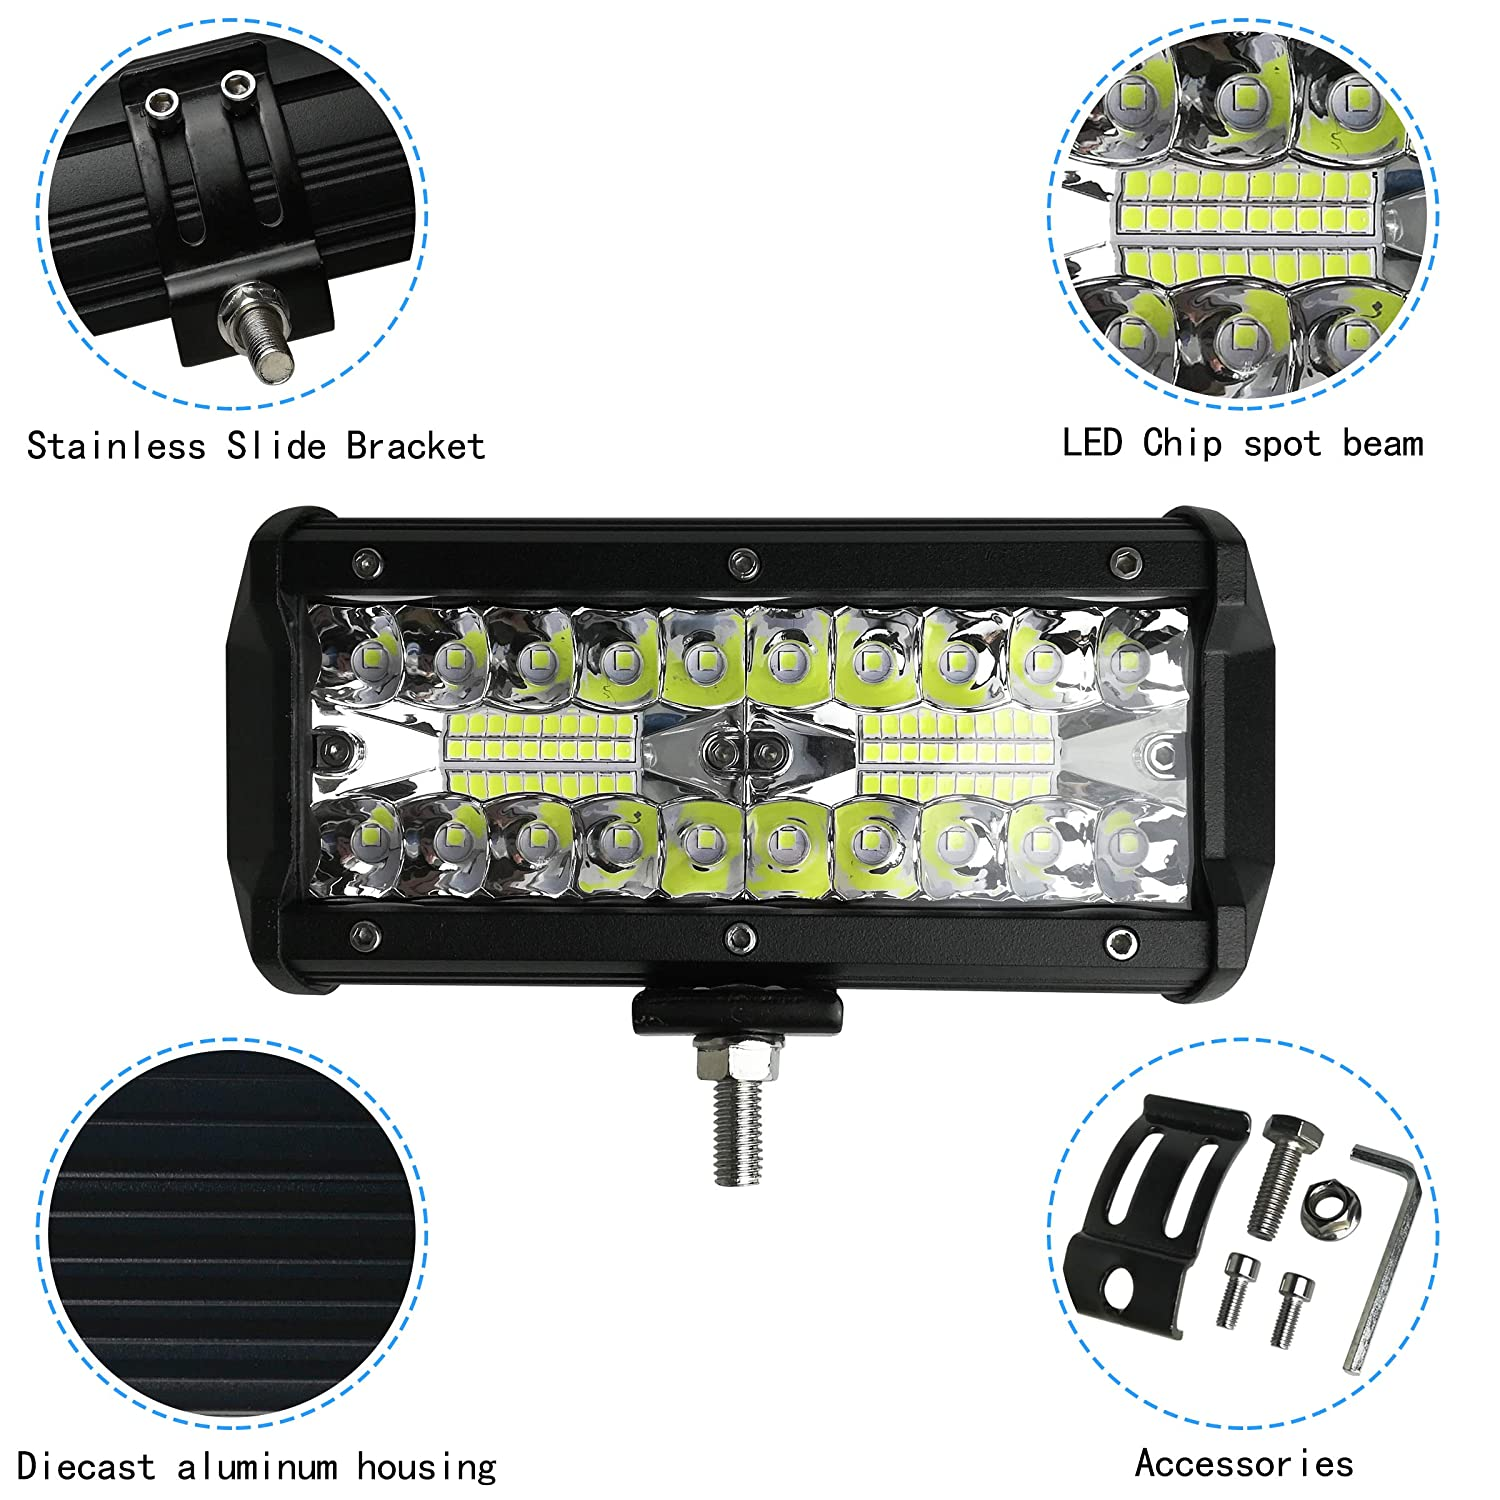 3 Years Warranty Woku LED Light Bar 7 INCH 120W 9600 LM Triple Row Led Light Bar Spot Light Driving Fog Light IP67 Waterproof Off Road Work Light for UTV JEEP Truck and Boat